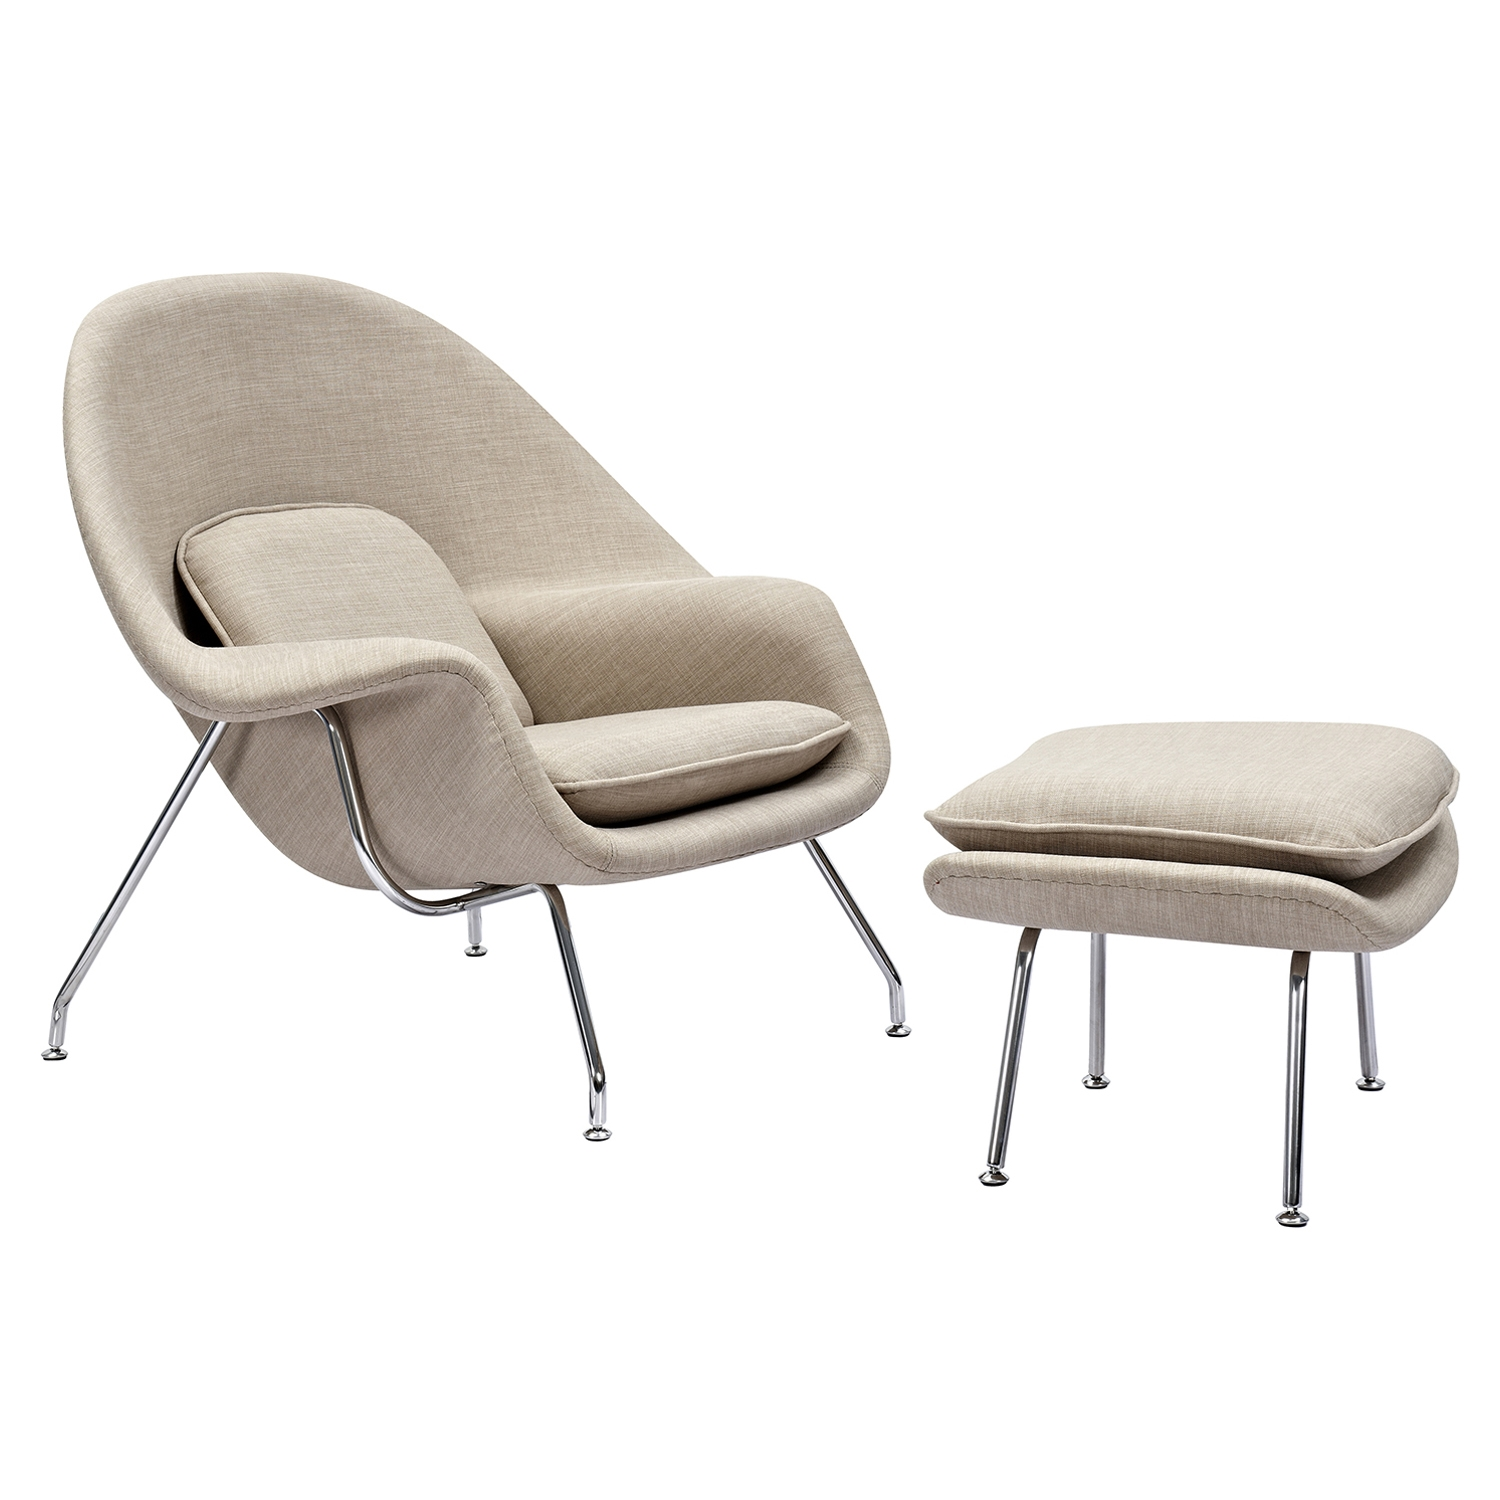 Saro Upholstered Chair - Light Sand